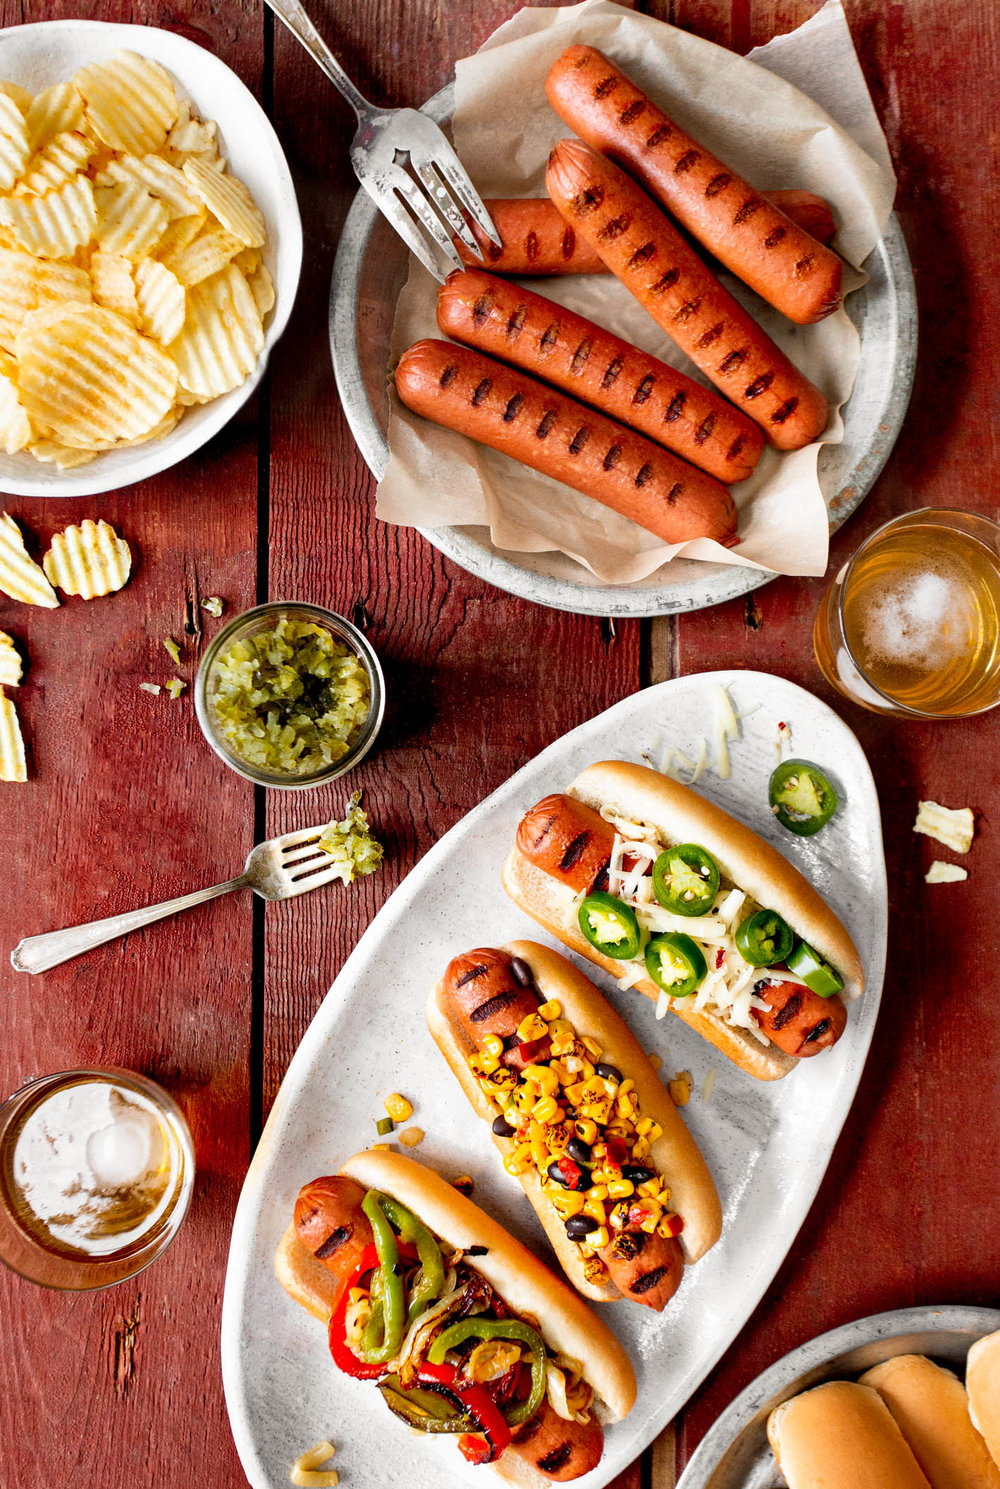 Strauss_Hotdogs-1.jpg